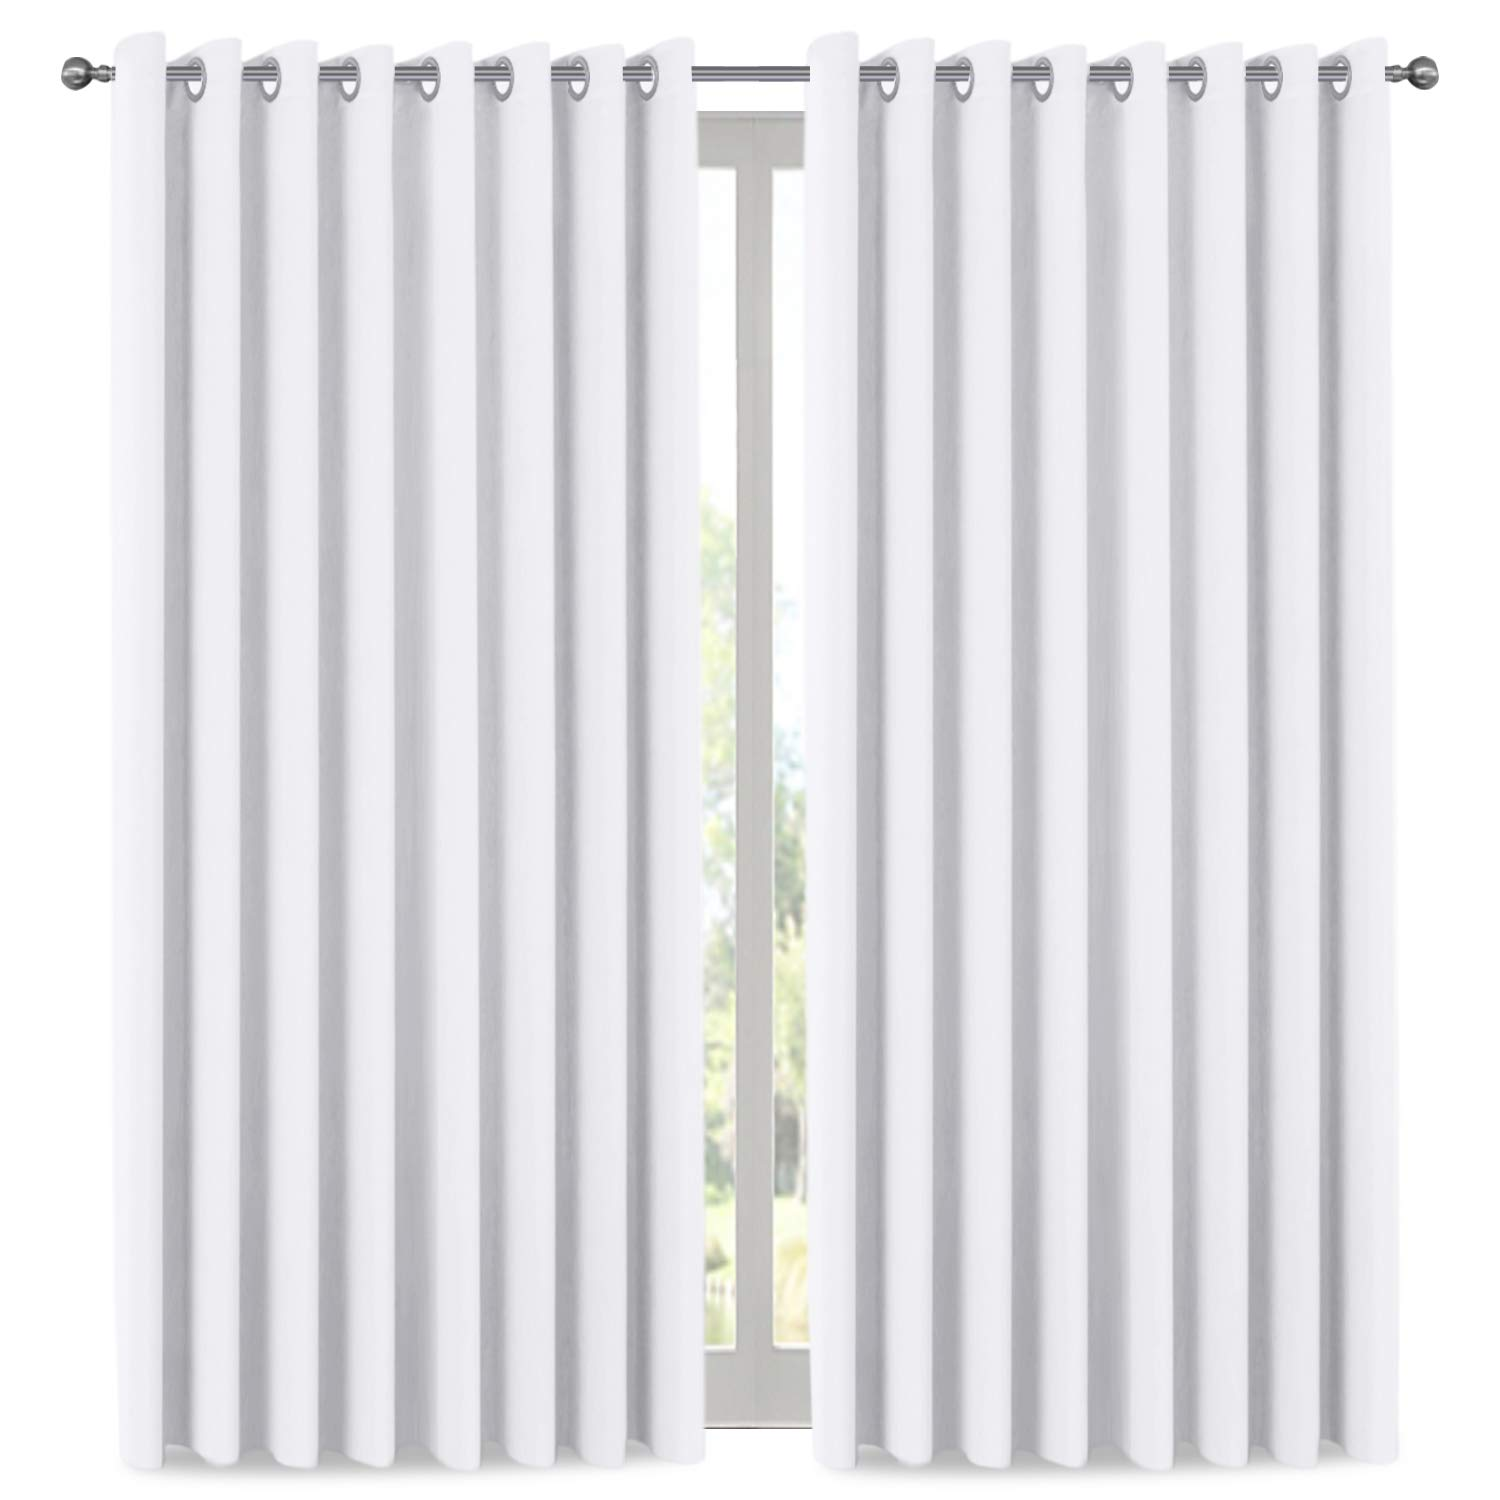 H.VERSAILTEX White Curtain Thermal Insulated Extra Long Panel/Drapes (100'' W x 108'' L), Premium Total Privacy Room Divider Curtain (9ft Tall by 8.5ft Wide)